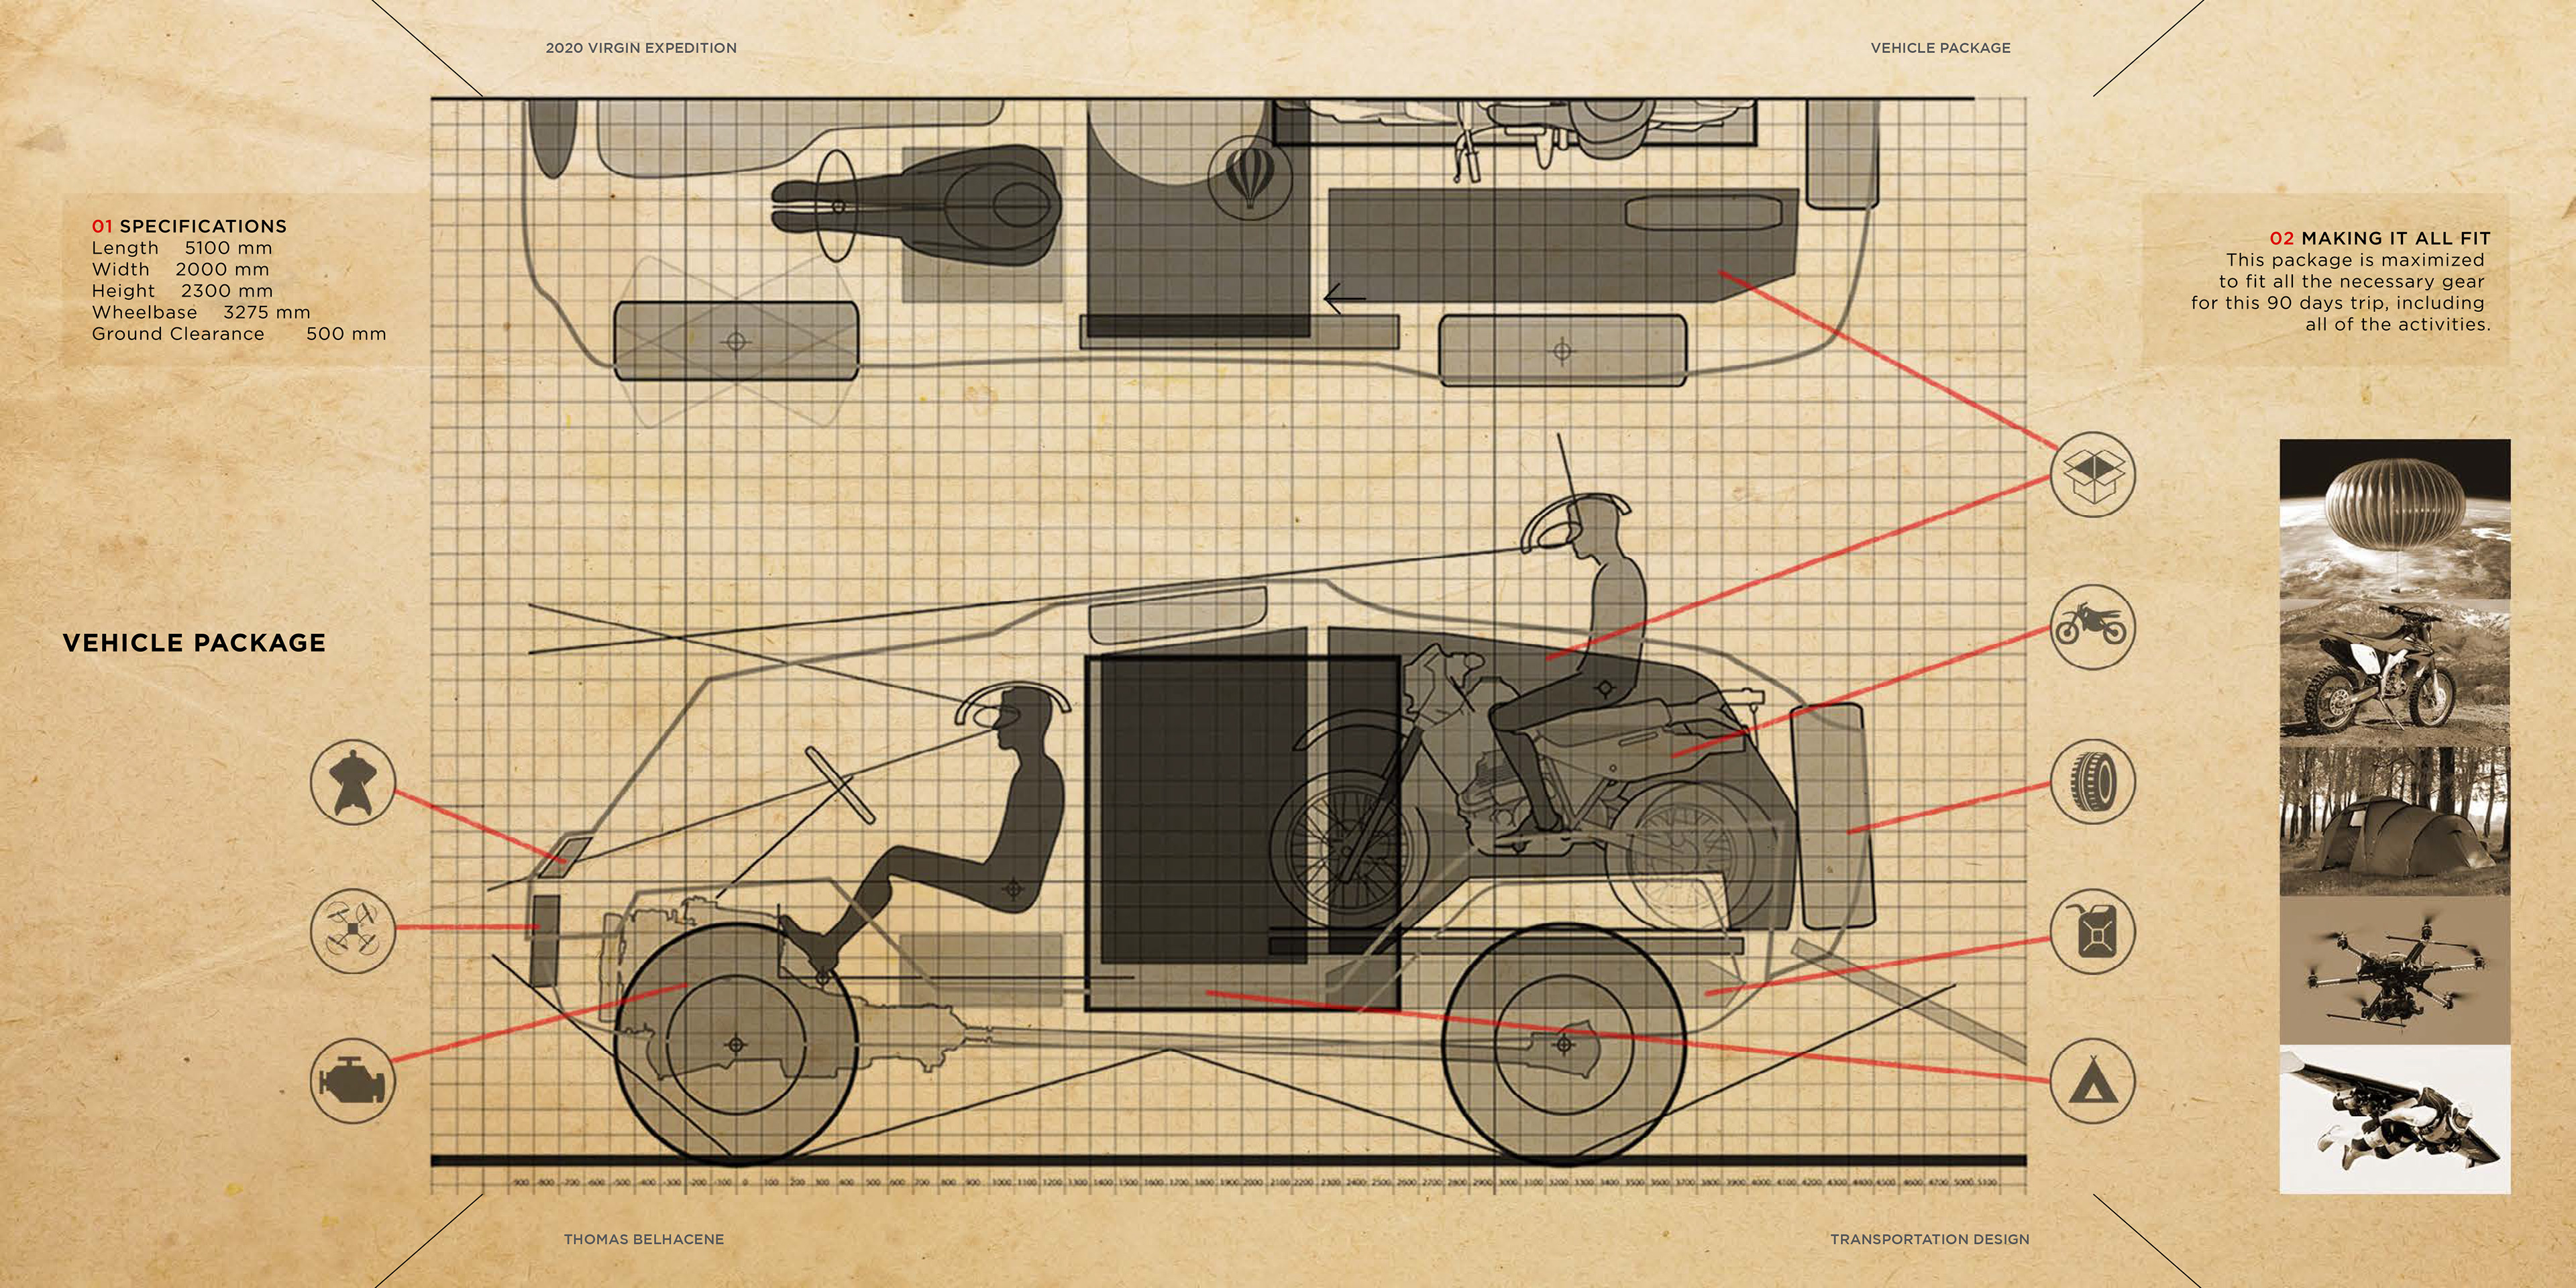 VIRGIN Expedition Vehicle on Behance